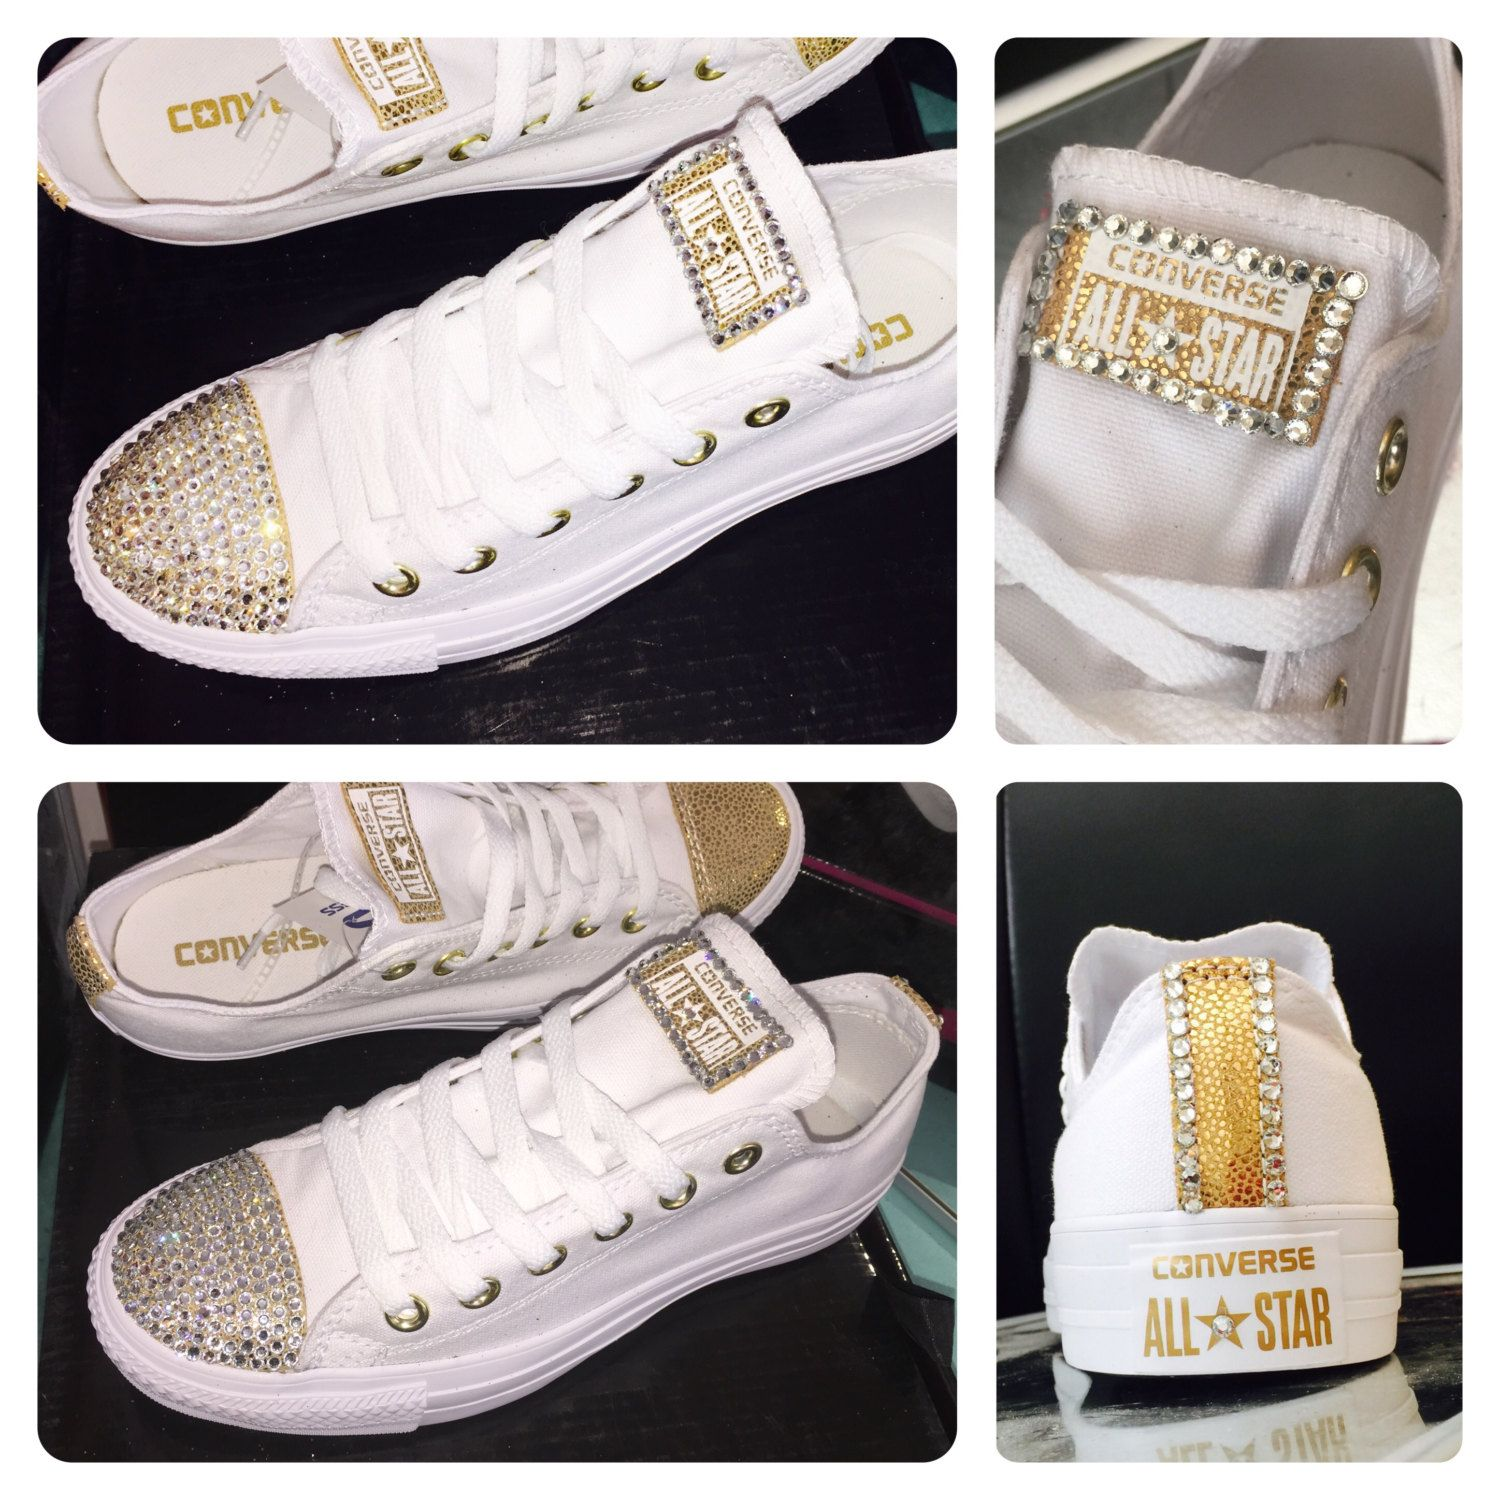 Converse all star canvas white with gold metallic swarovski crystal  sneakers shoes by CrystalCleatss on Etsy 871c21b874b4